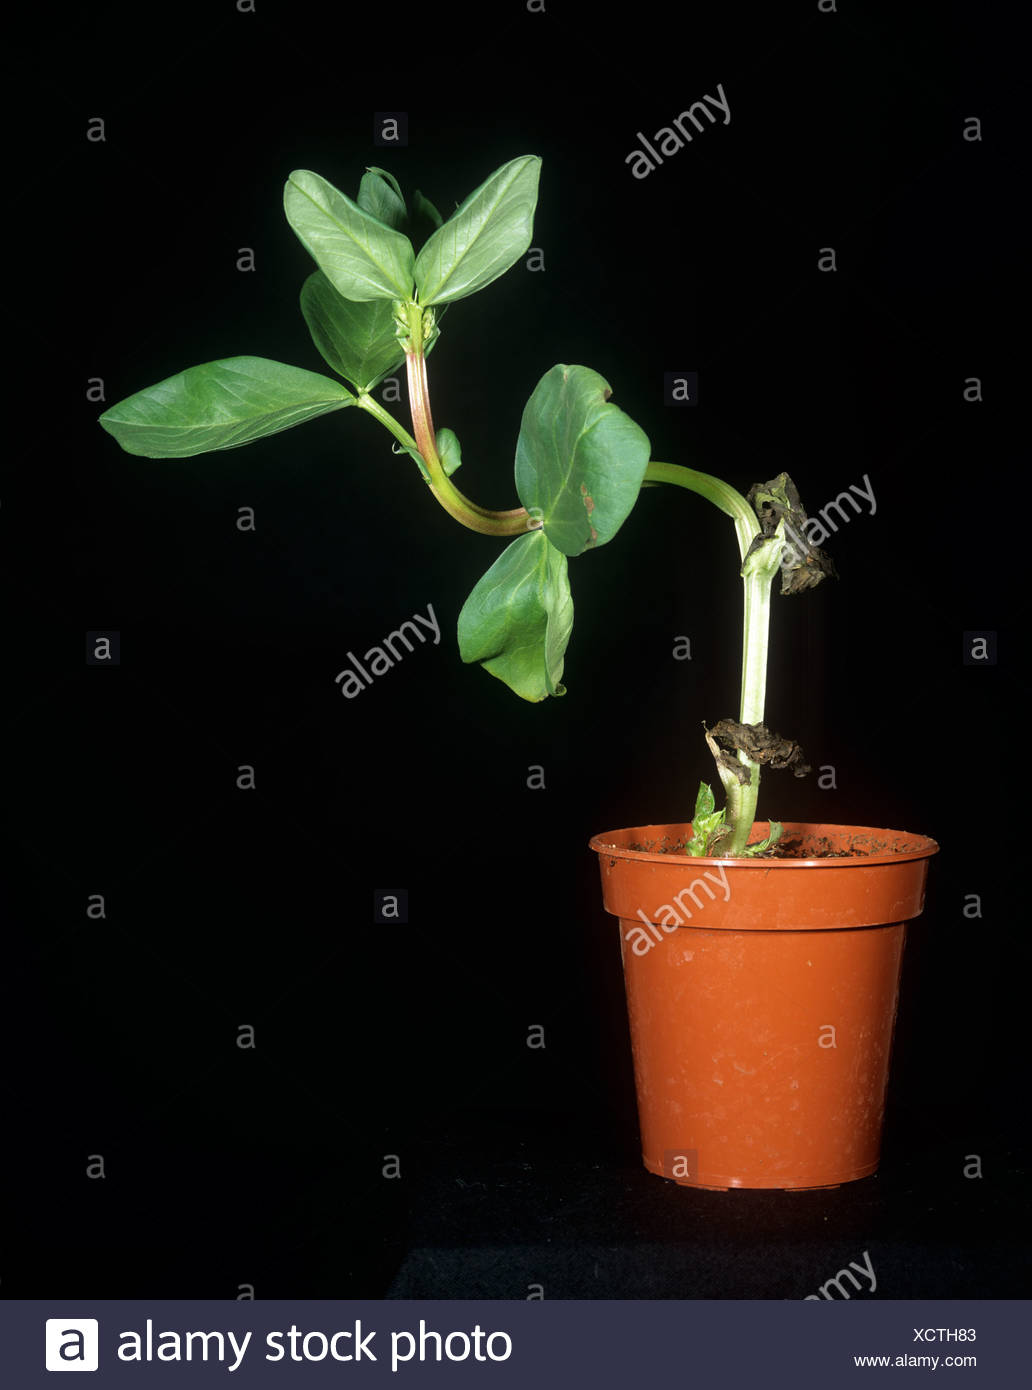 A broad bean responding to changes in attitude a light to demonstrate tropism - Stock Image